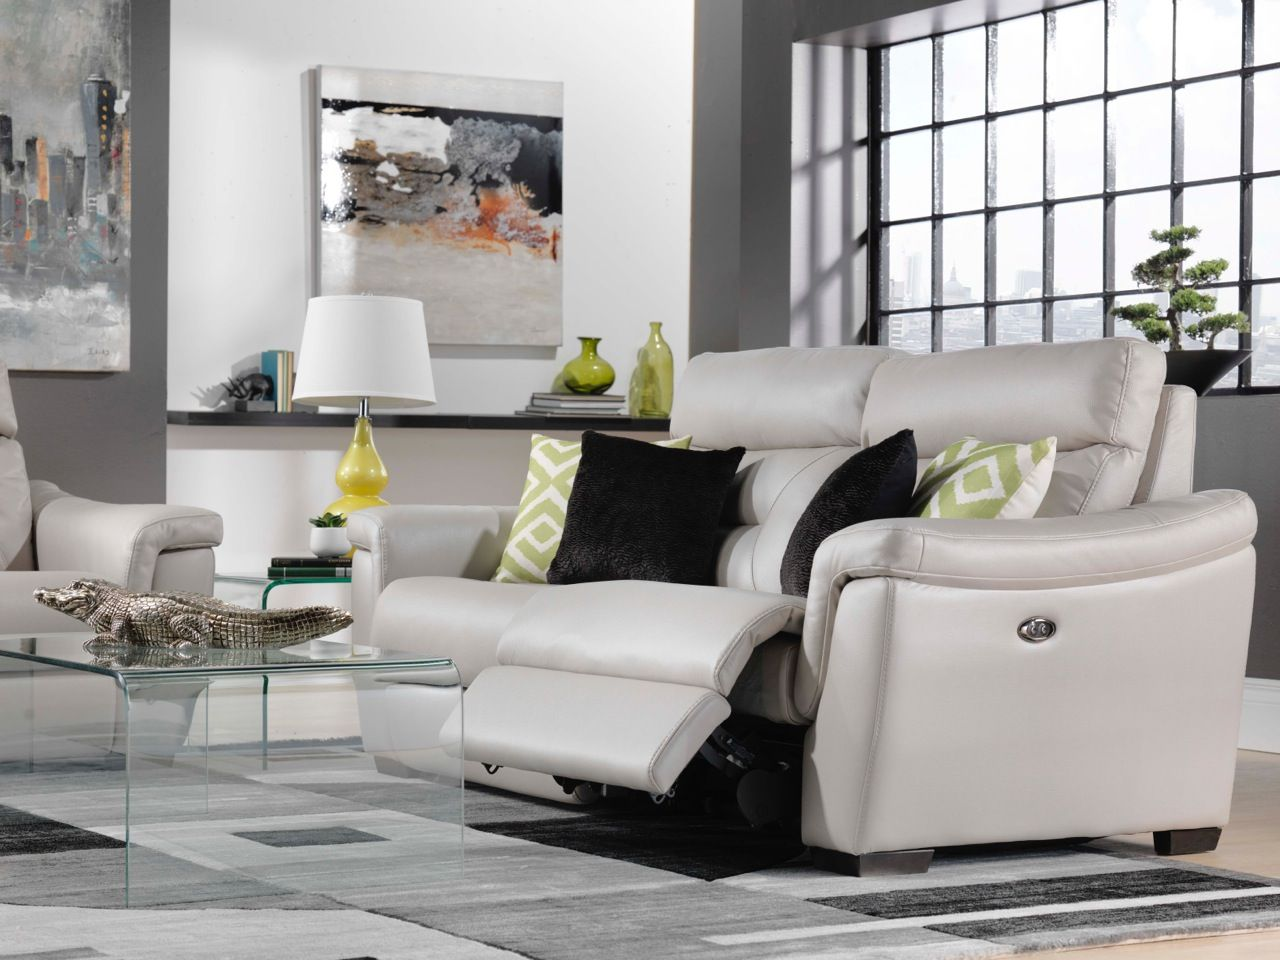 Euro Lounge. Create The Look And Feel Of A Chic, Modern European Living Room  With The Ralston Collection. Complete With Silver Grey, Leather Look  Upholstery ...